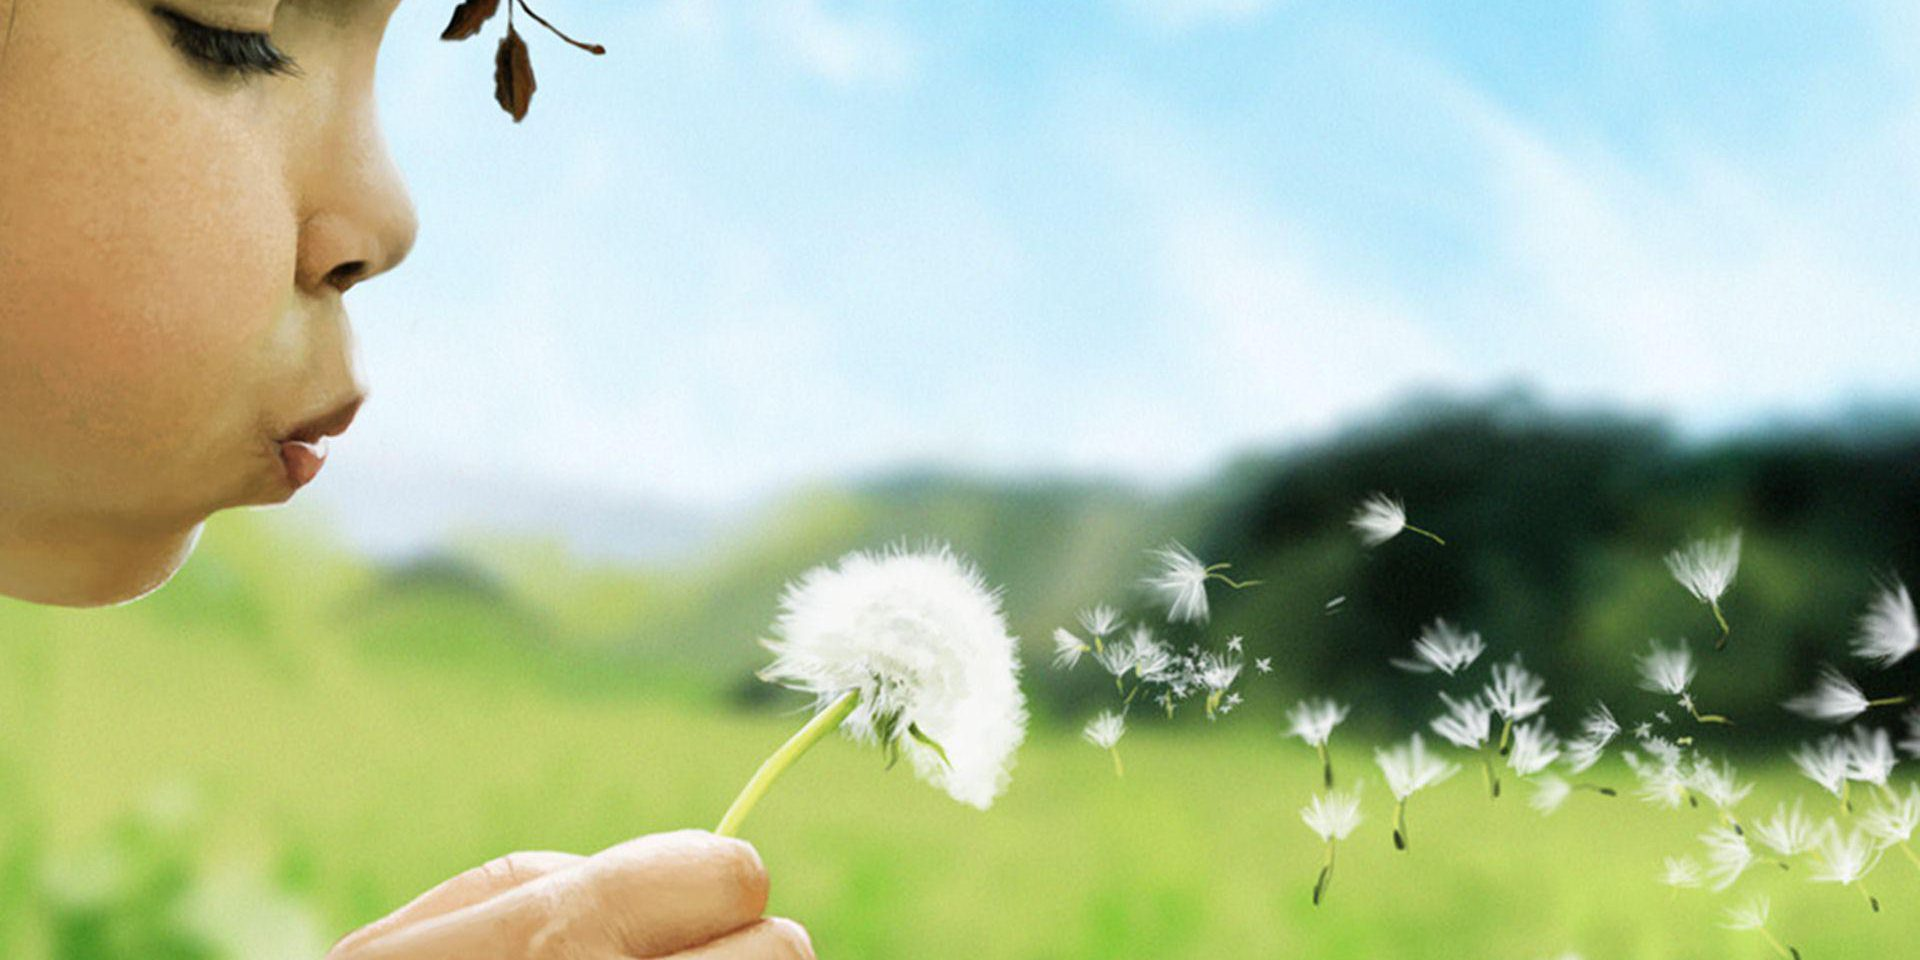 child-girl-blowing-dandelion-taraxacum-flower